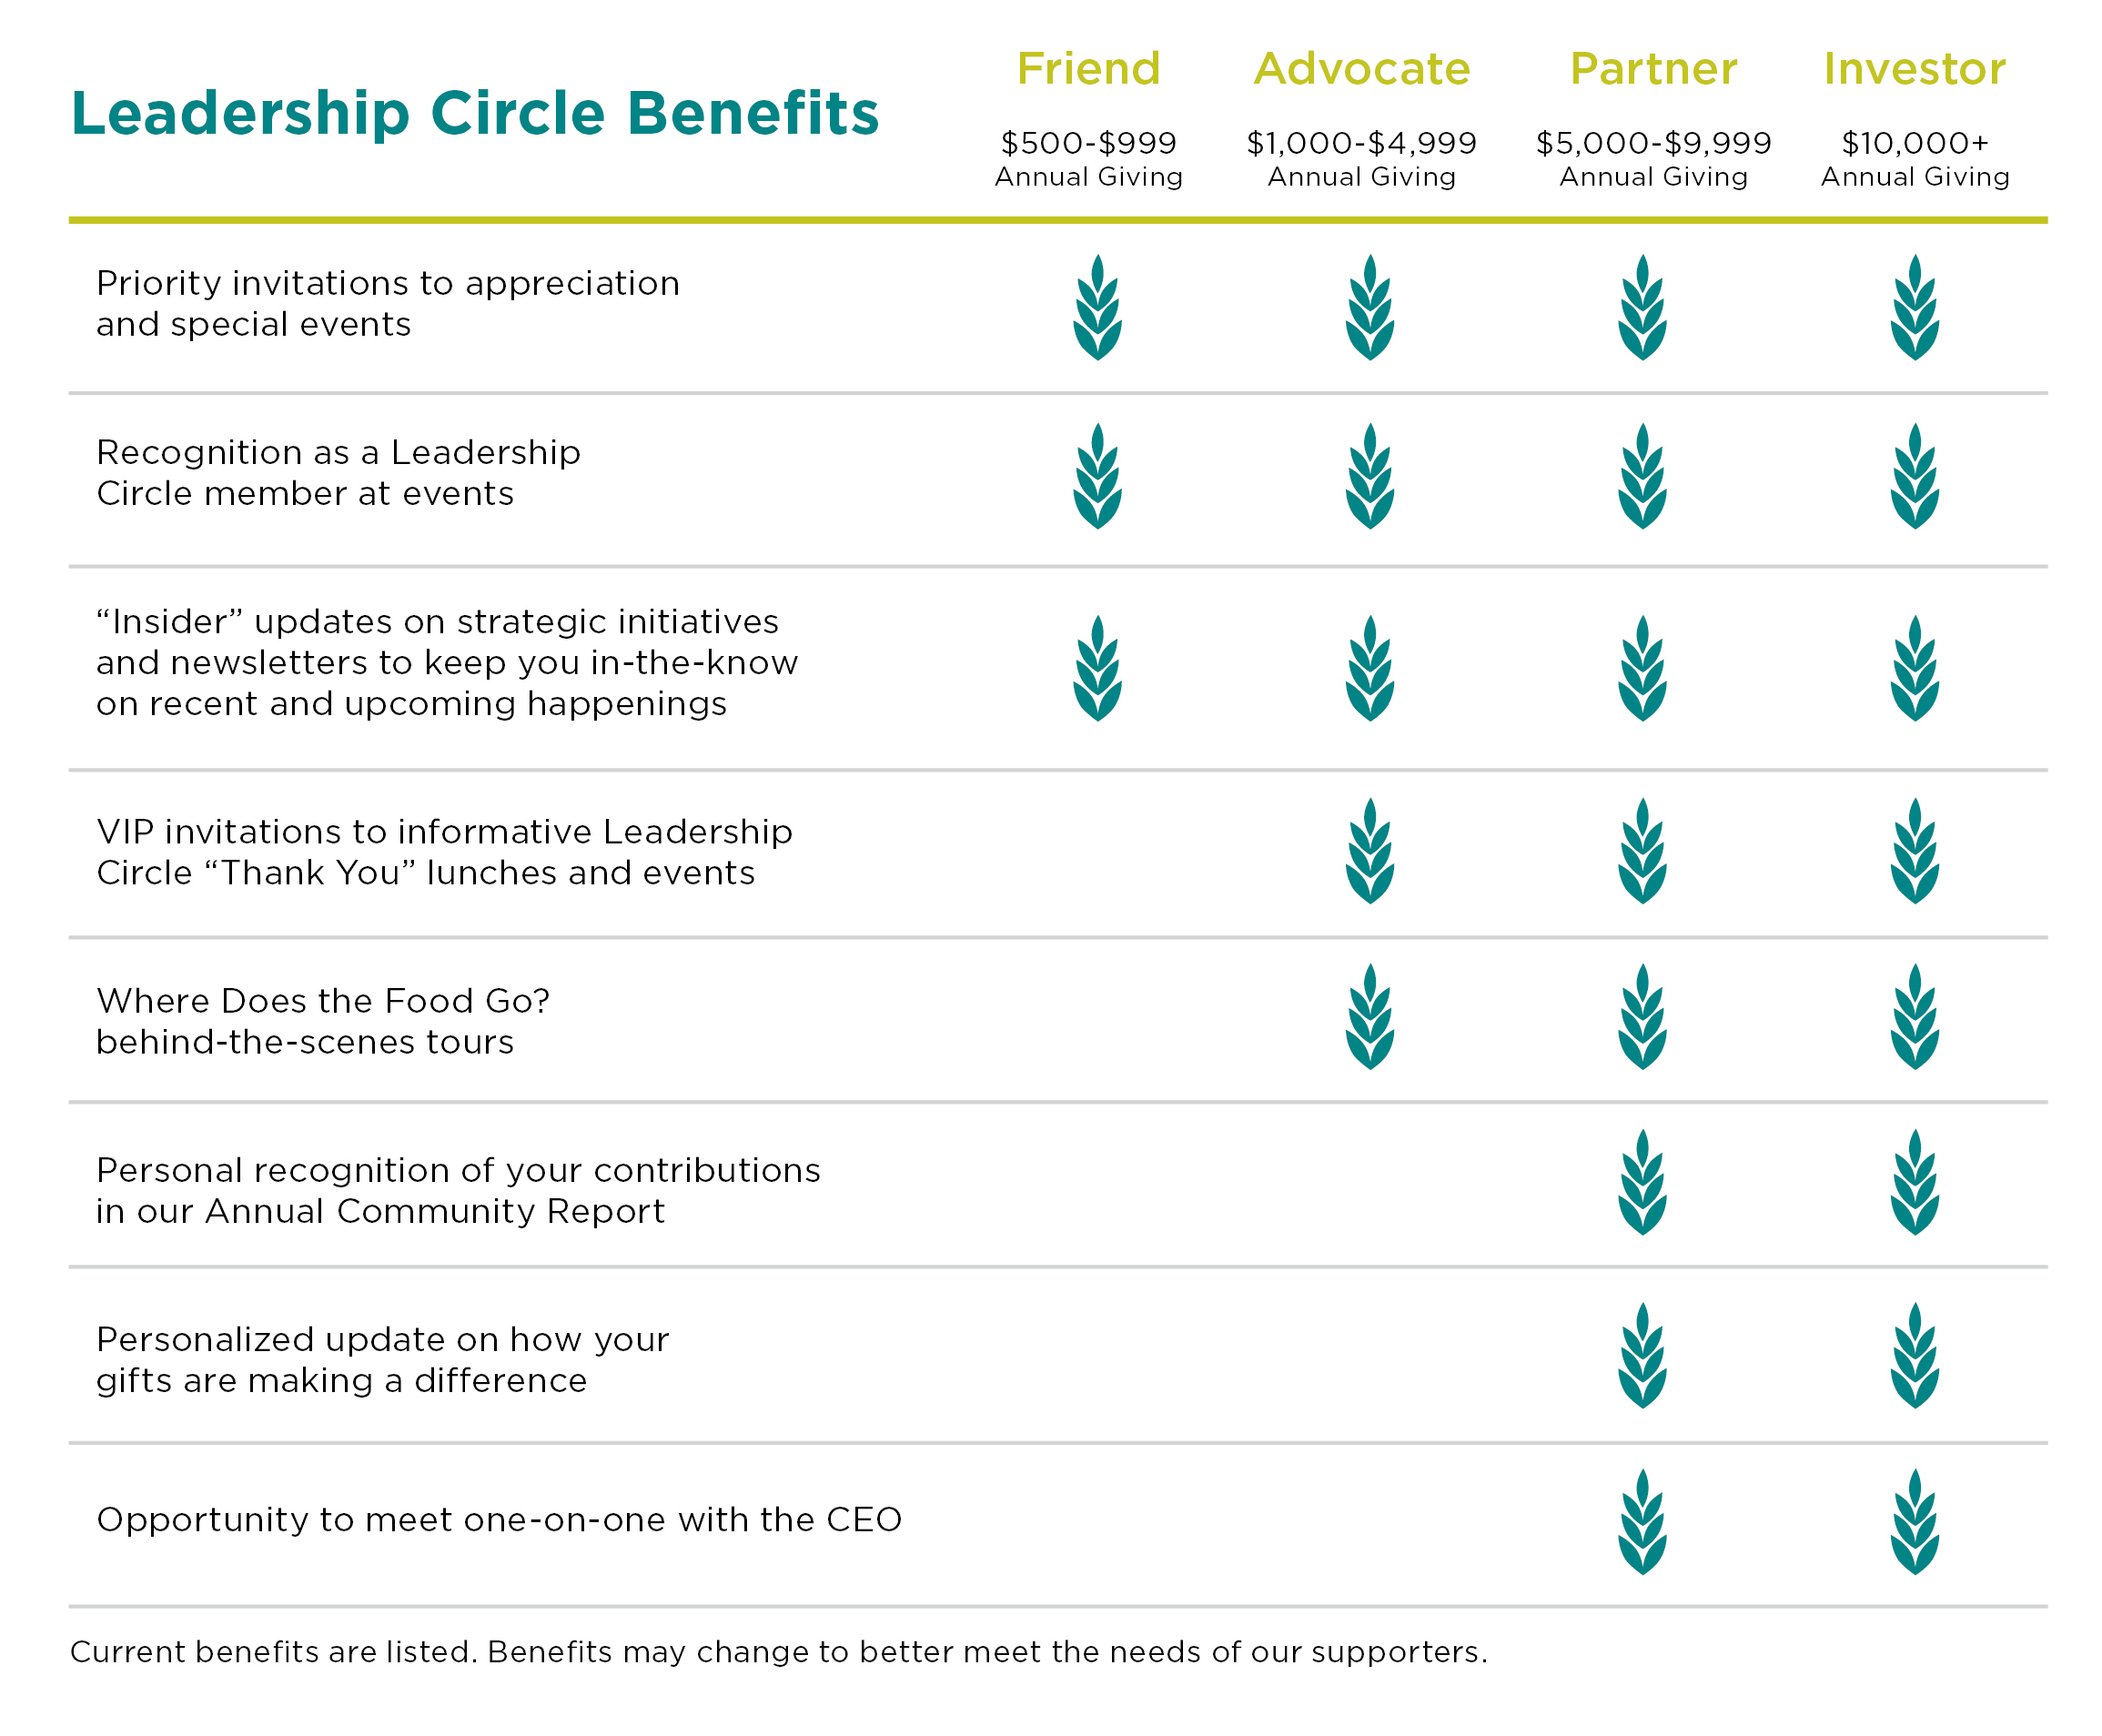 leadershipcirclebenefits